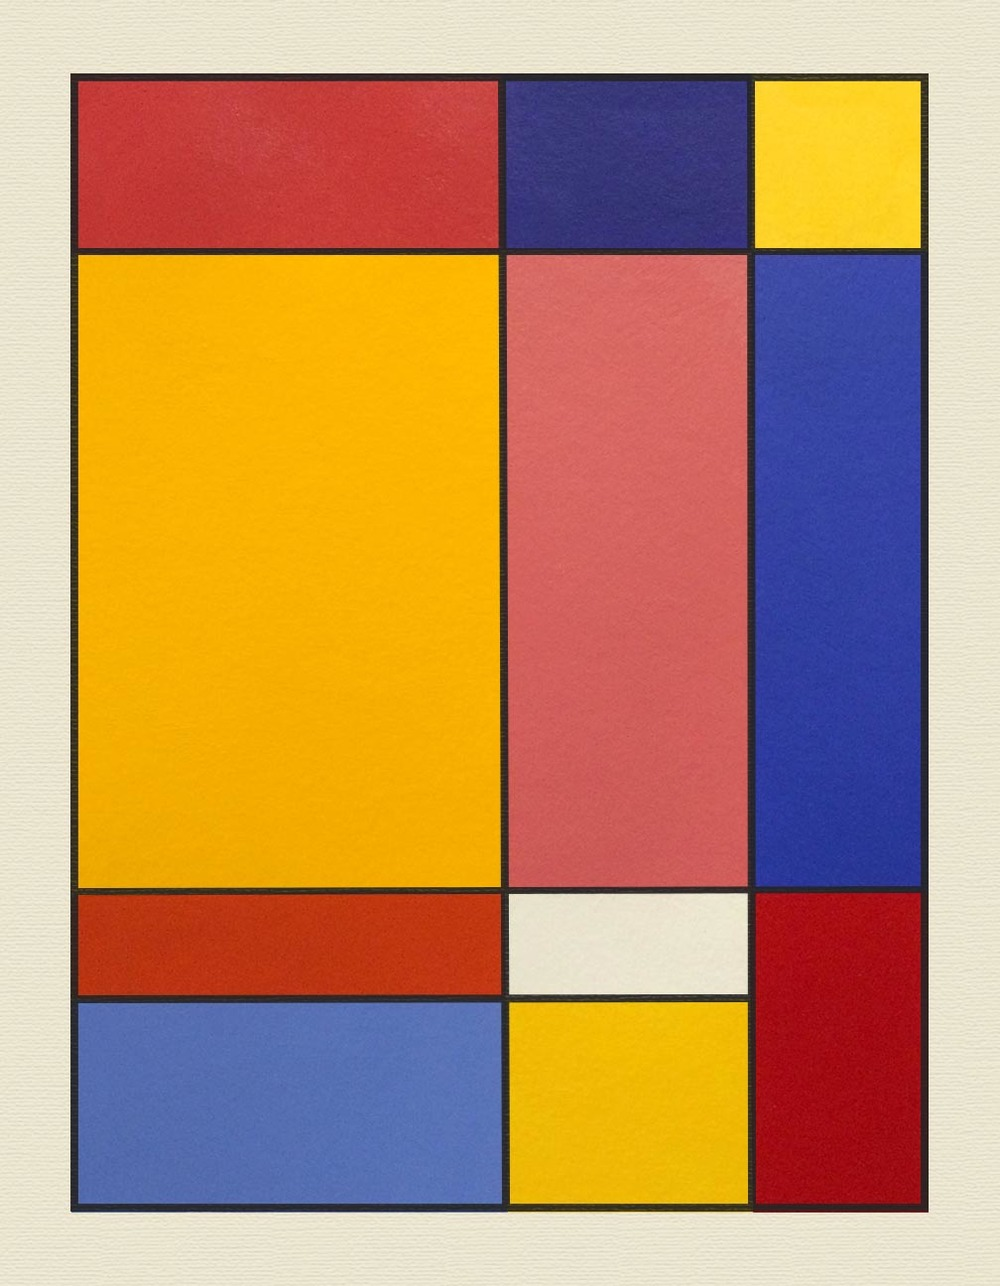 Color Theory: Mondrian Study    Acrylic paint, 12x16 in. with 1 in. border.     This project was inspired by Piet Mondrian, the famous painter who created works of primary-colored grids like this one.  The purpose was to understand mixing similar values of different hues and placing them next to each other in an appealing manner, while mastering the techniques of painting opaquely and creating smooth edges with tape. We were asked to make 11 boxes by drawing two lines vertically and three lines horizontally and then erasing one piece of one line. Next, we filled the boxes with three values of each primary color, one secondary color, and one white. The challenge was to match each value with the same amount of lightness or darkness in the other two hues of the same value (for example, the lightest blue had to match the lightest yellow and the lightest red). Finally, we added a black border for visual appeal and presented them to the class. I'm very happy with how mine turned out!